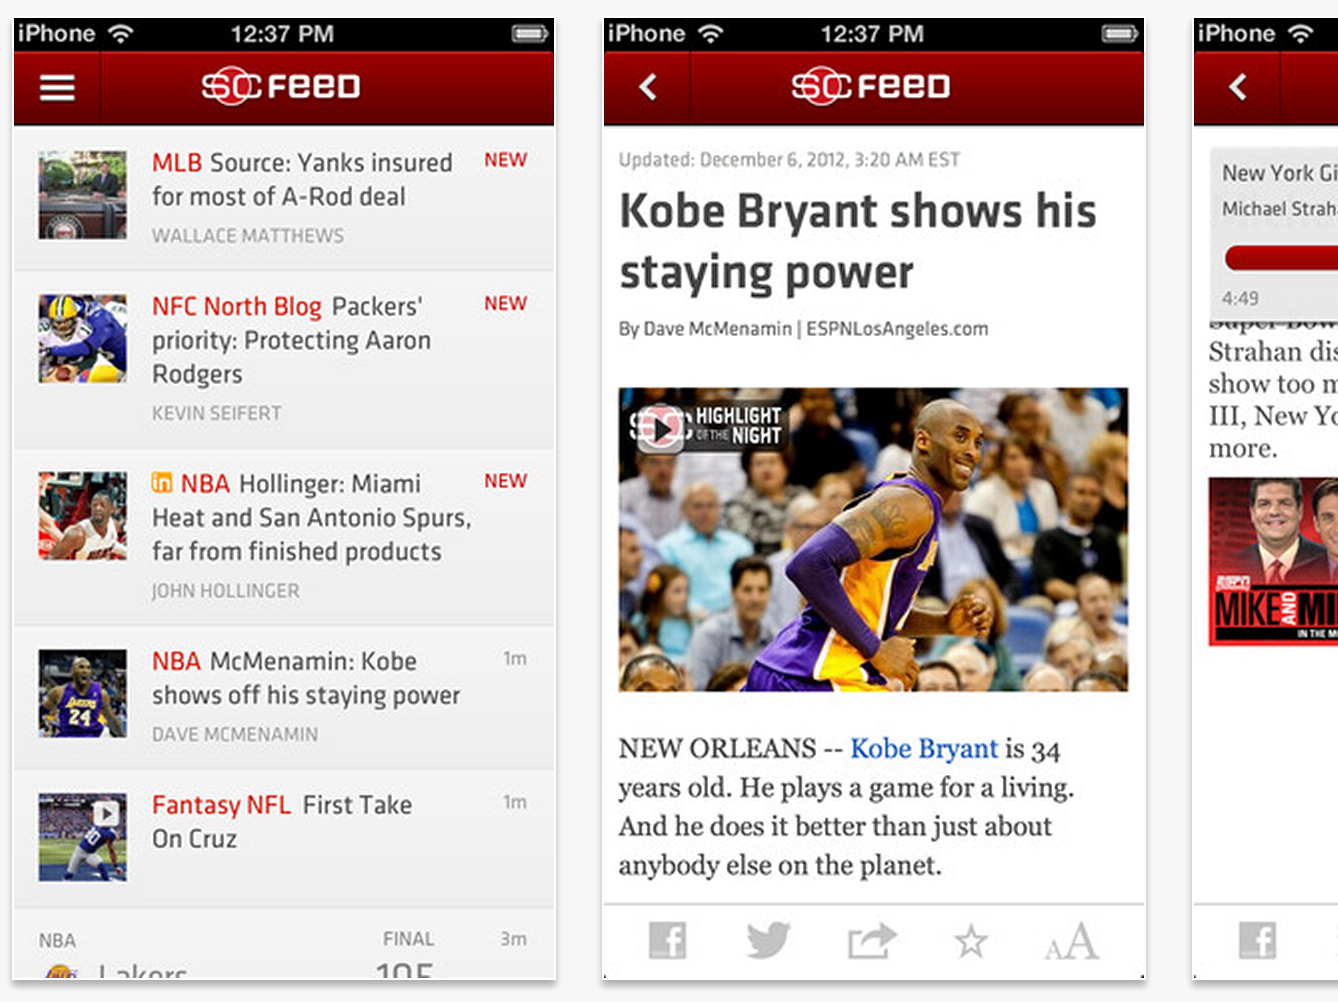 sportscenter feed iphone